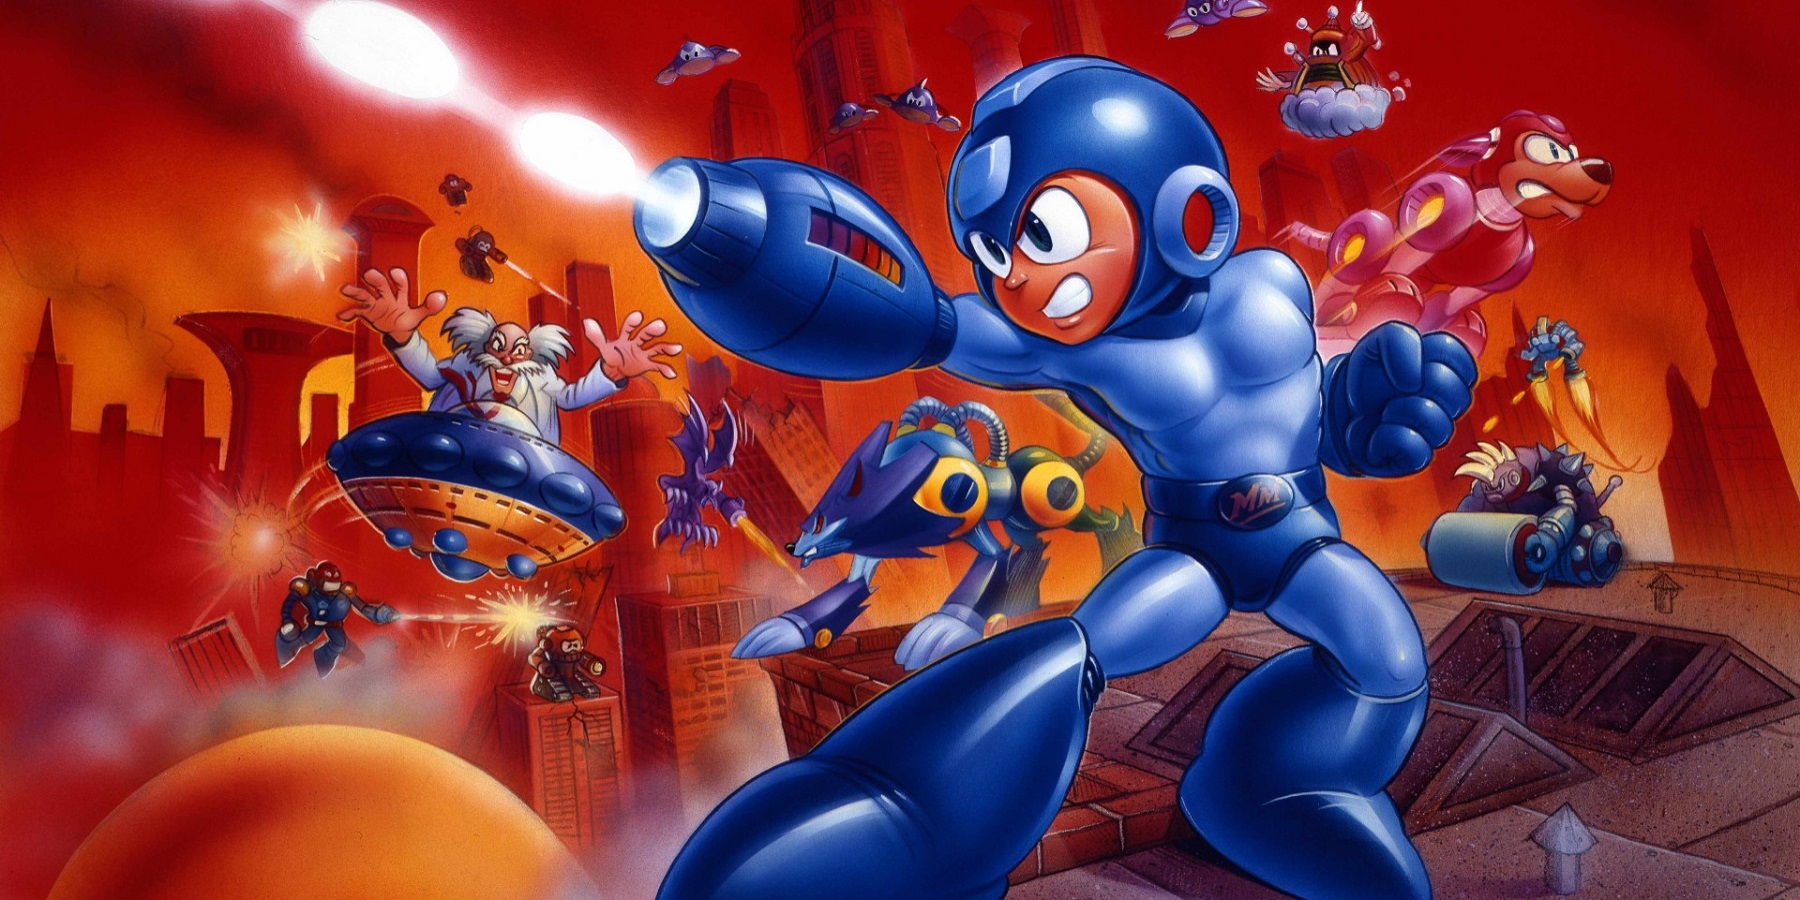 Mega Man TV Series Footage Gives Blue Bomber New Coat of Paint